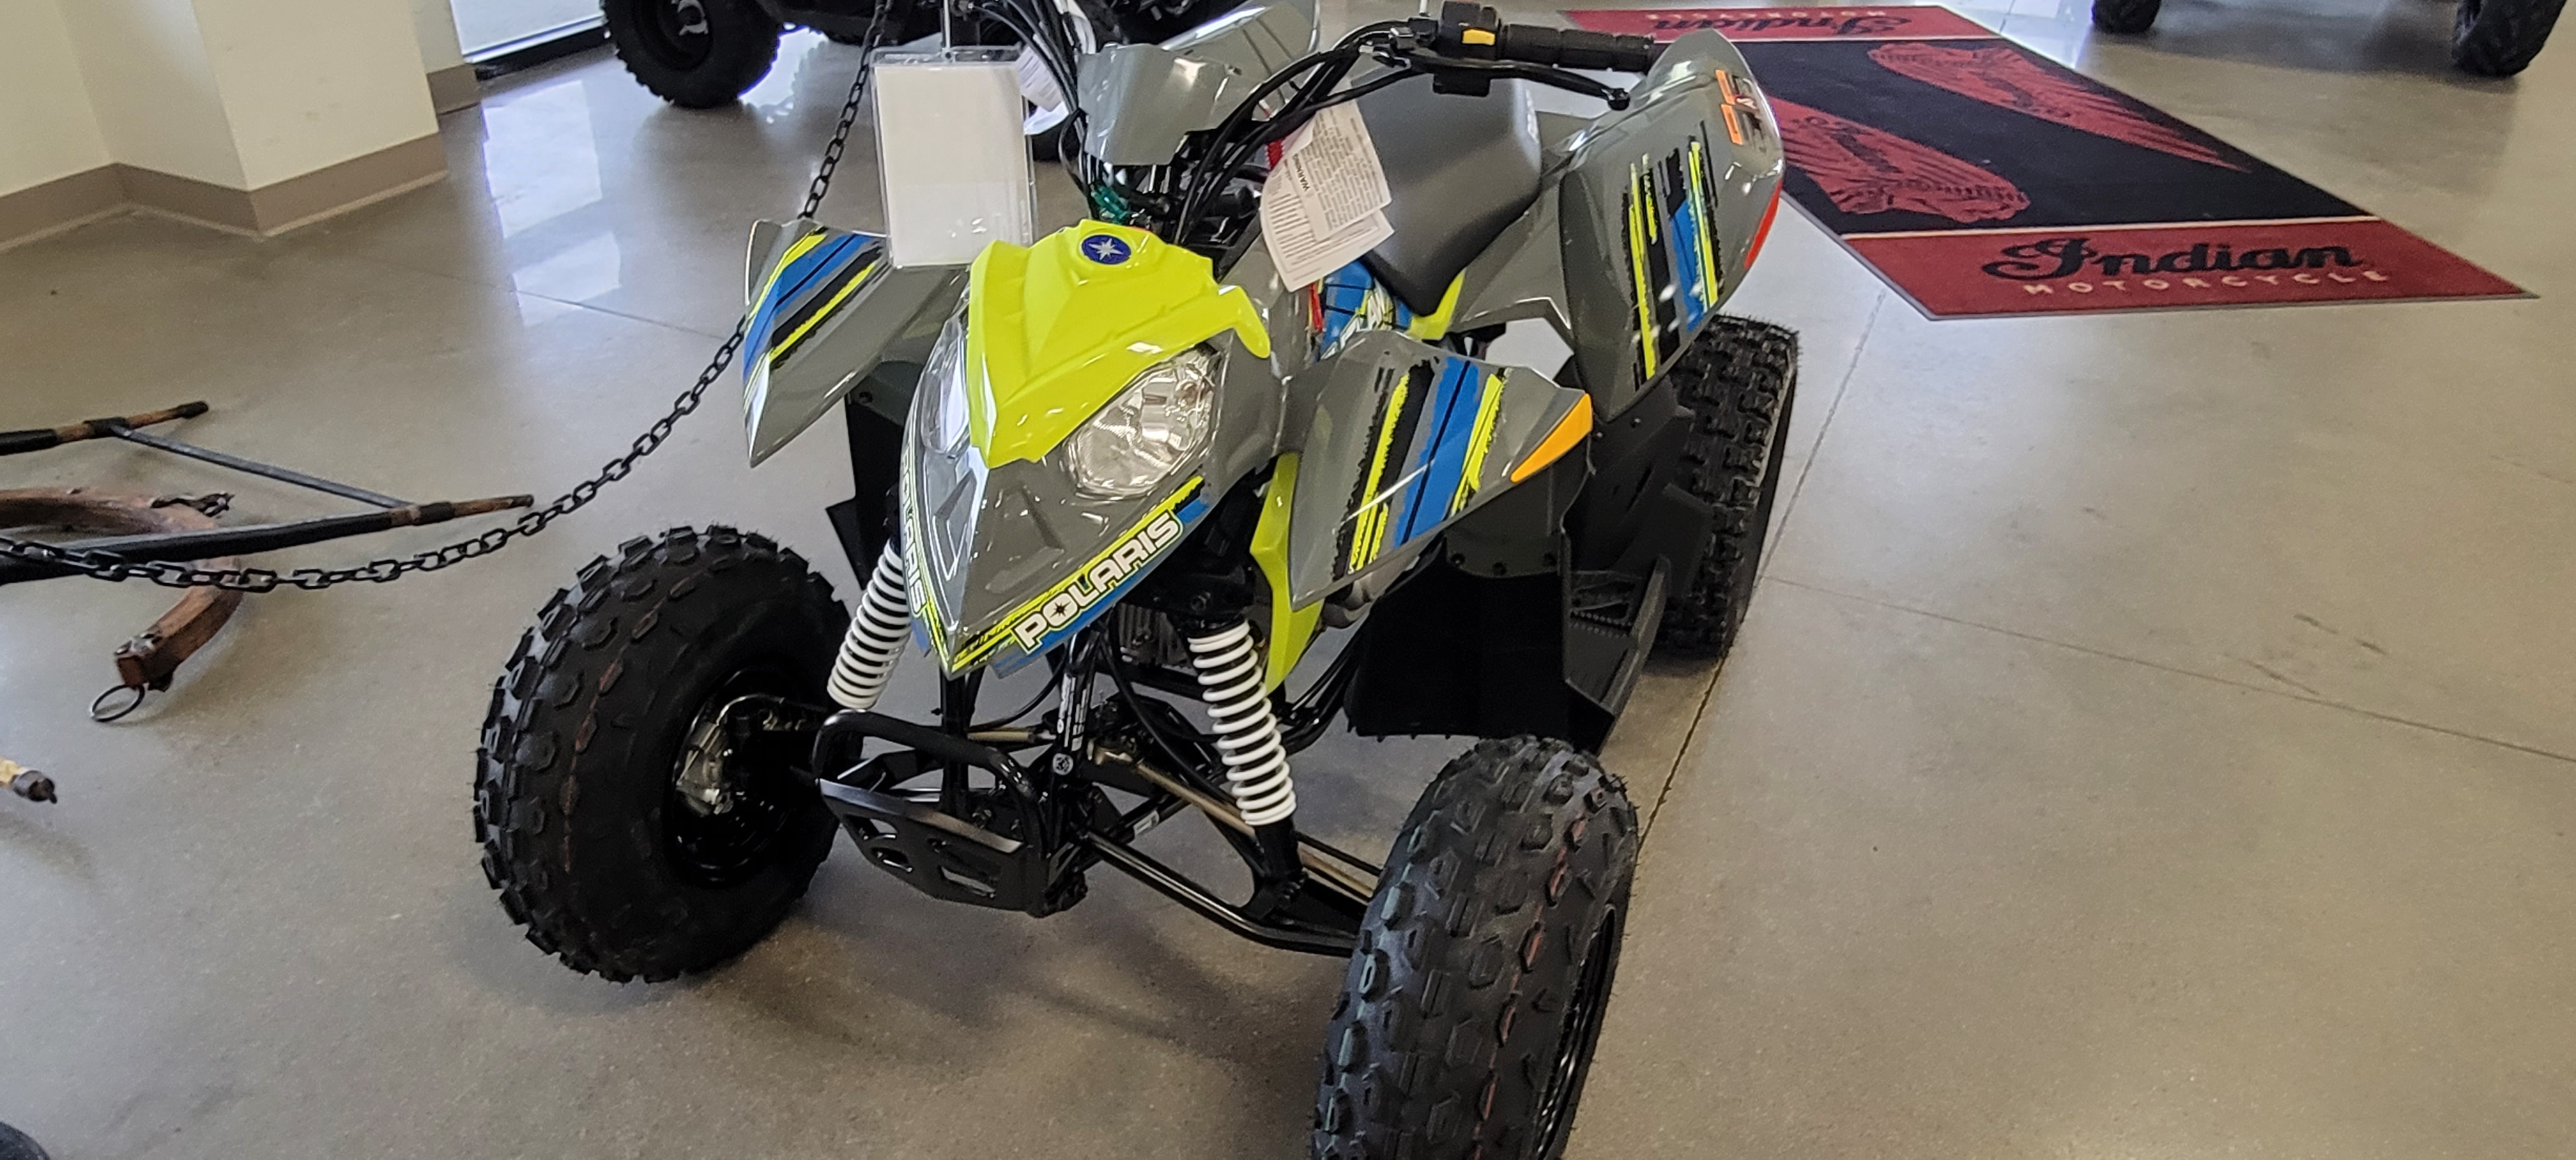 2021 Polaris Outlaw 110 EFI at Brenny's Motorcycle Clinic, Bettendorf, IA 52722